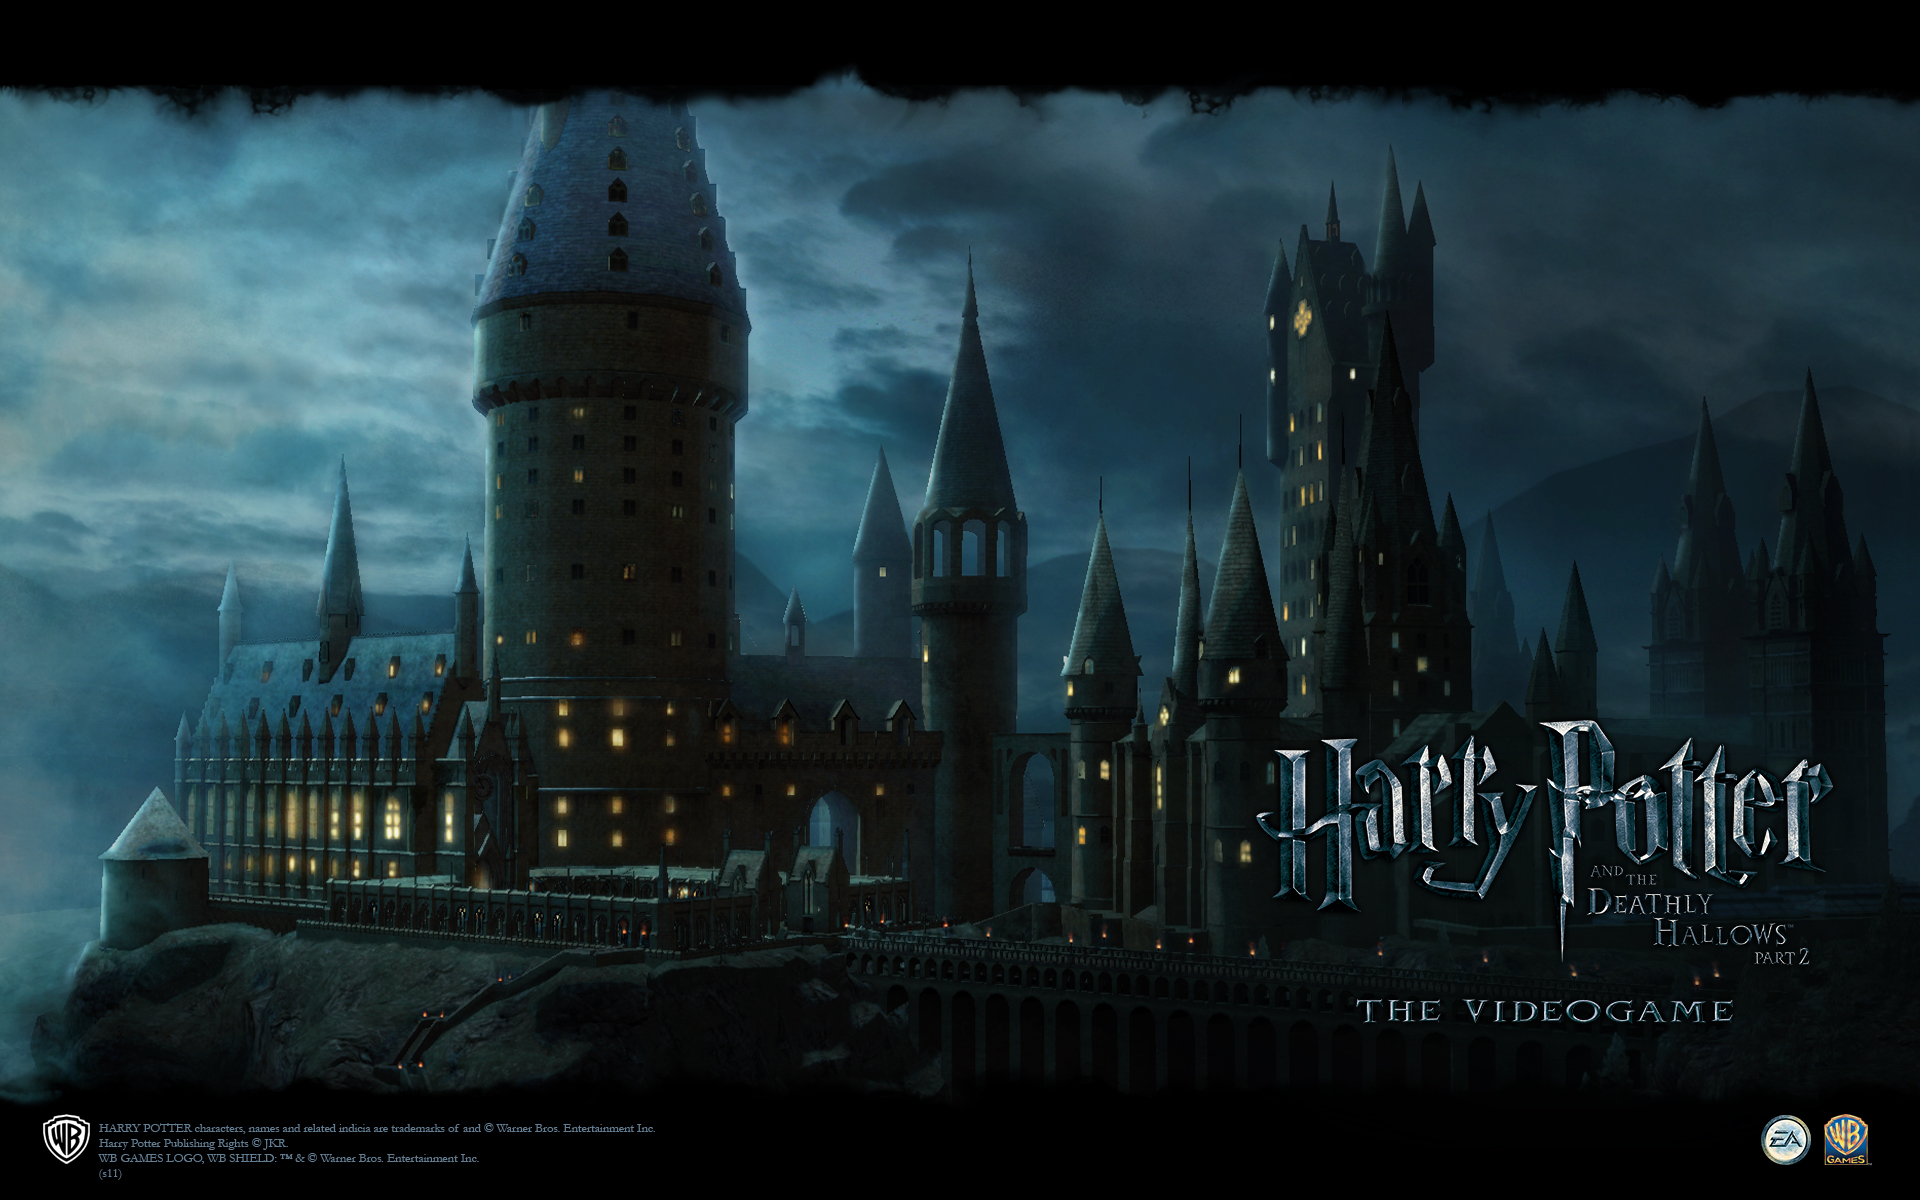 Hogwarts Wallpaper From Harry Potter And The Deathly Hallows Part